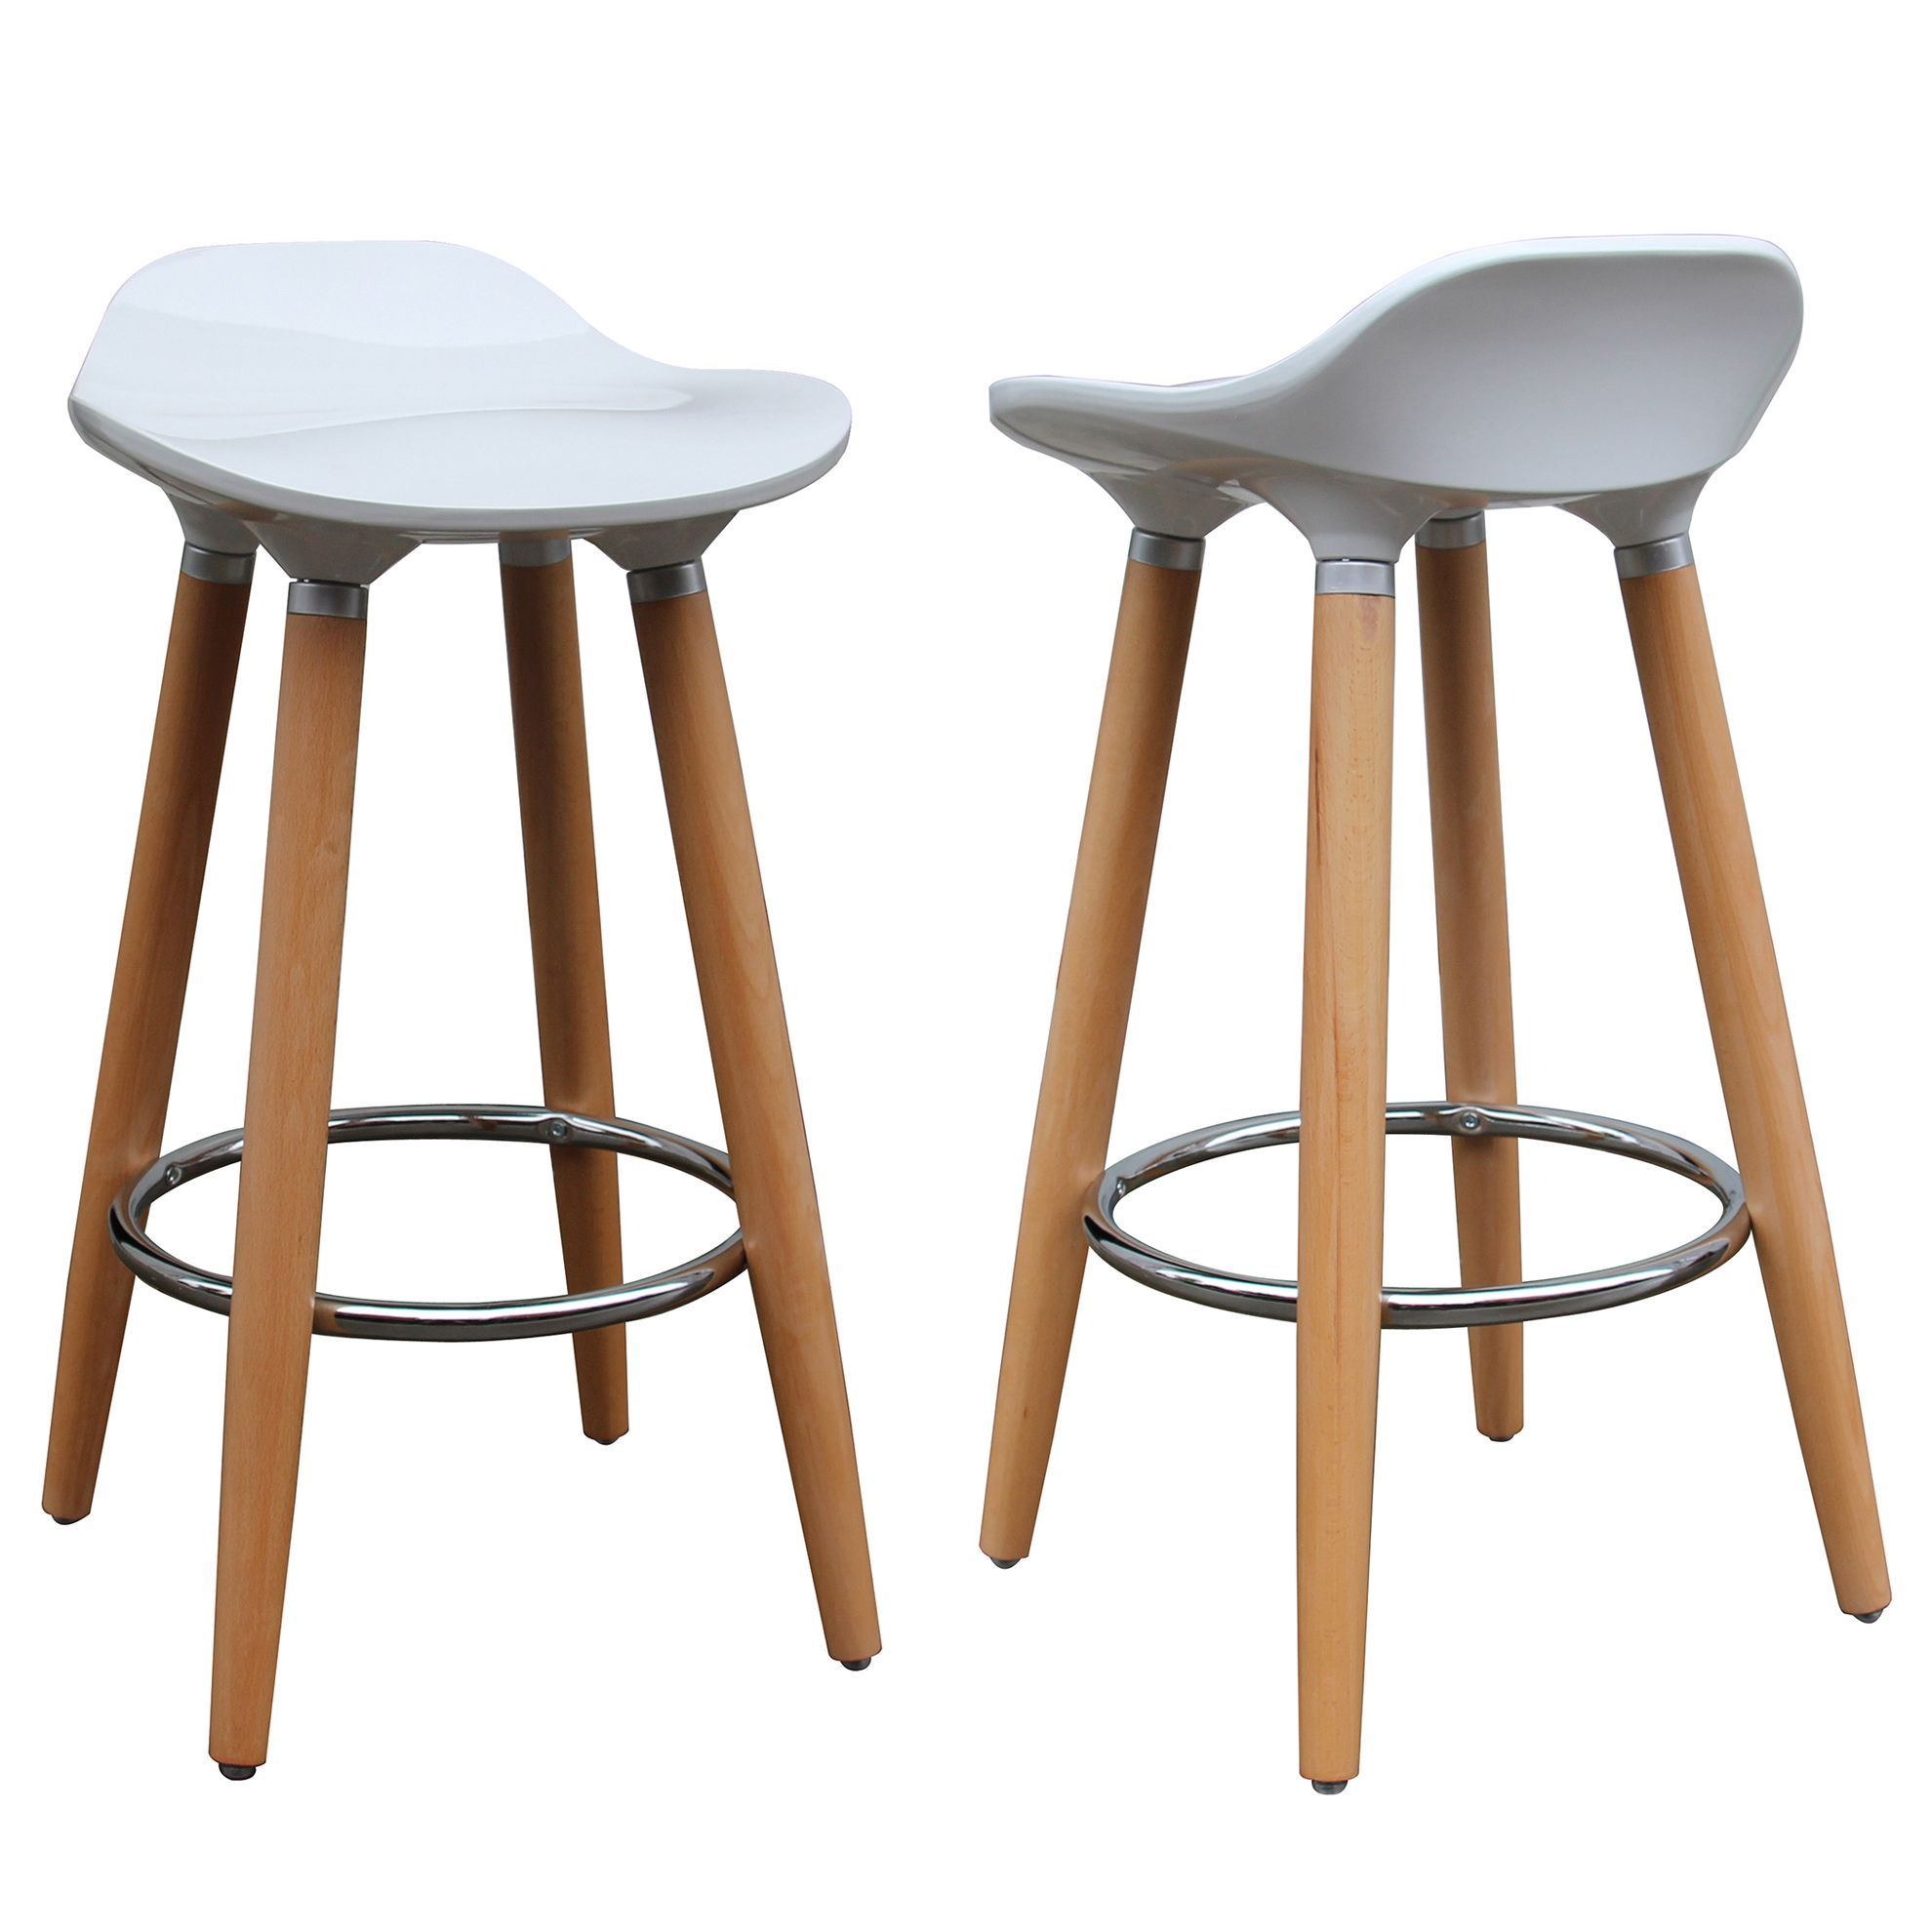 Each stool has a white abs plastic seat and naturally for 6 furniture legs canada